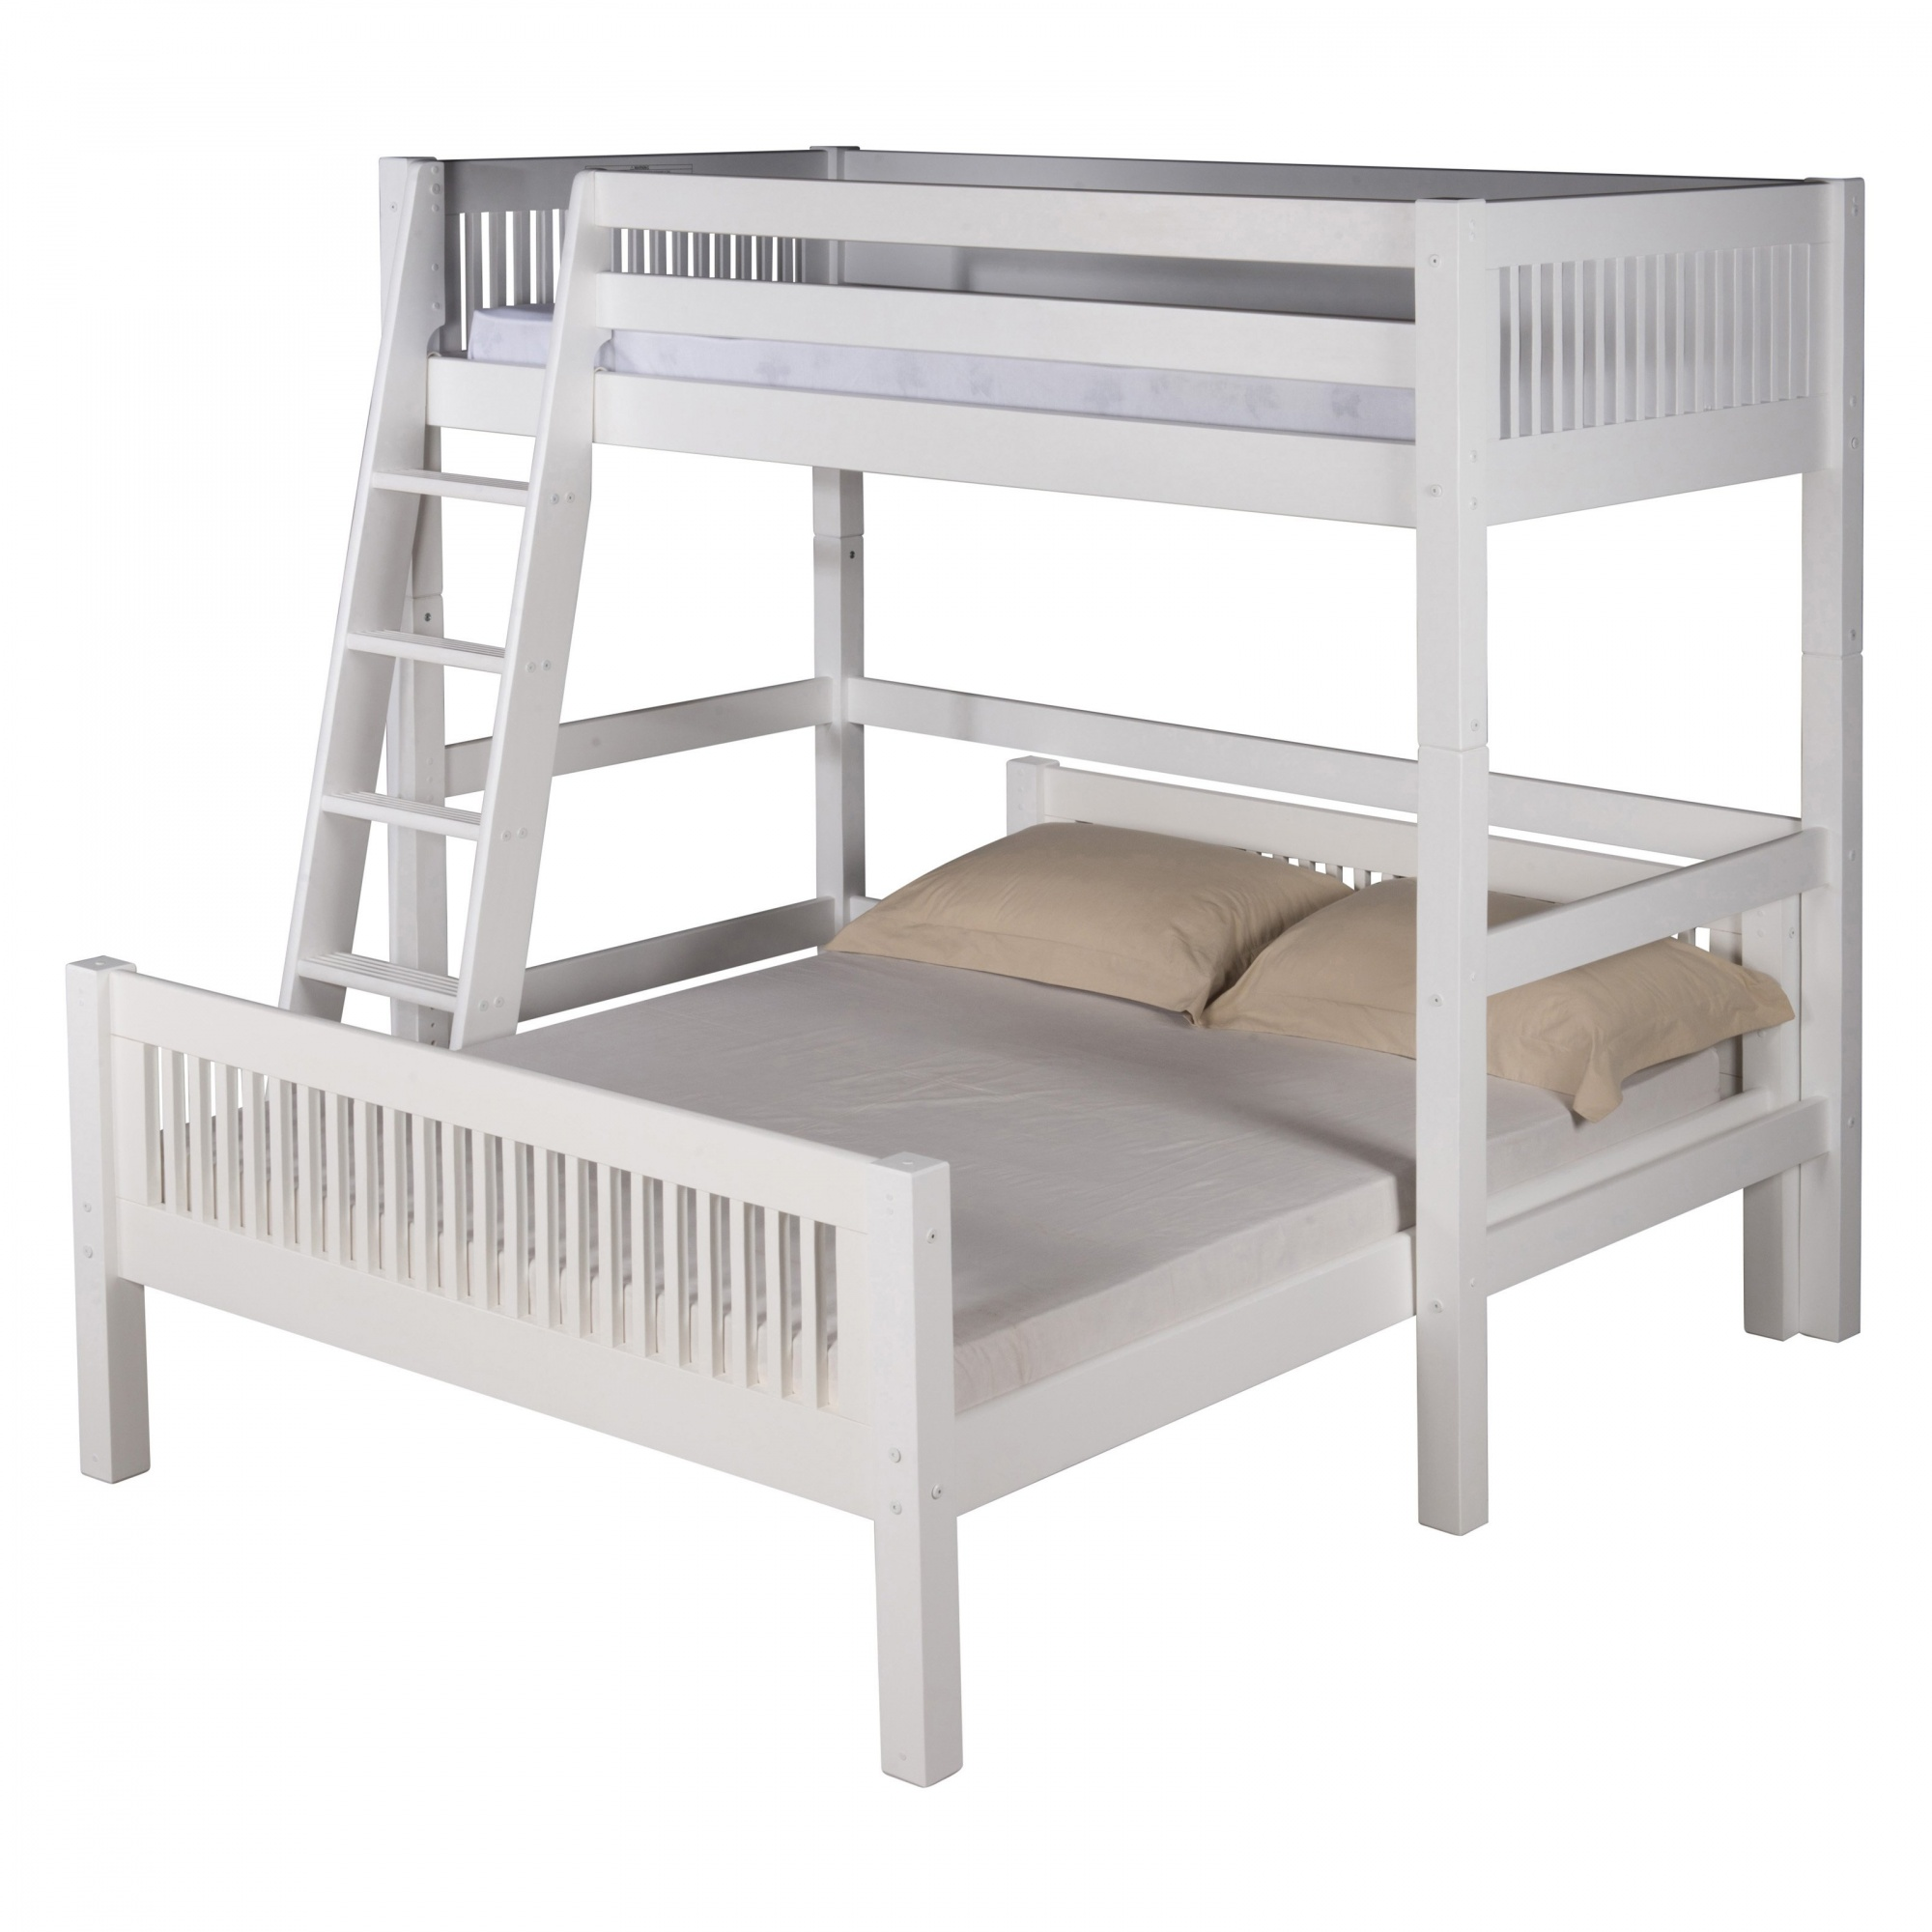 Picture of: Camaflexi Twin Over Full L Shaped Loft Bed By Camiflexi Shop Online For Homeware In Australia